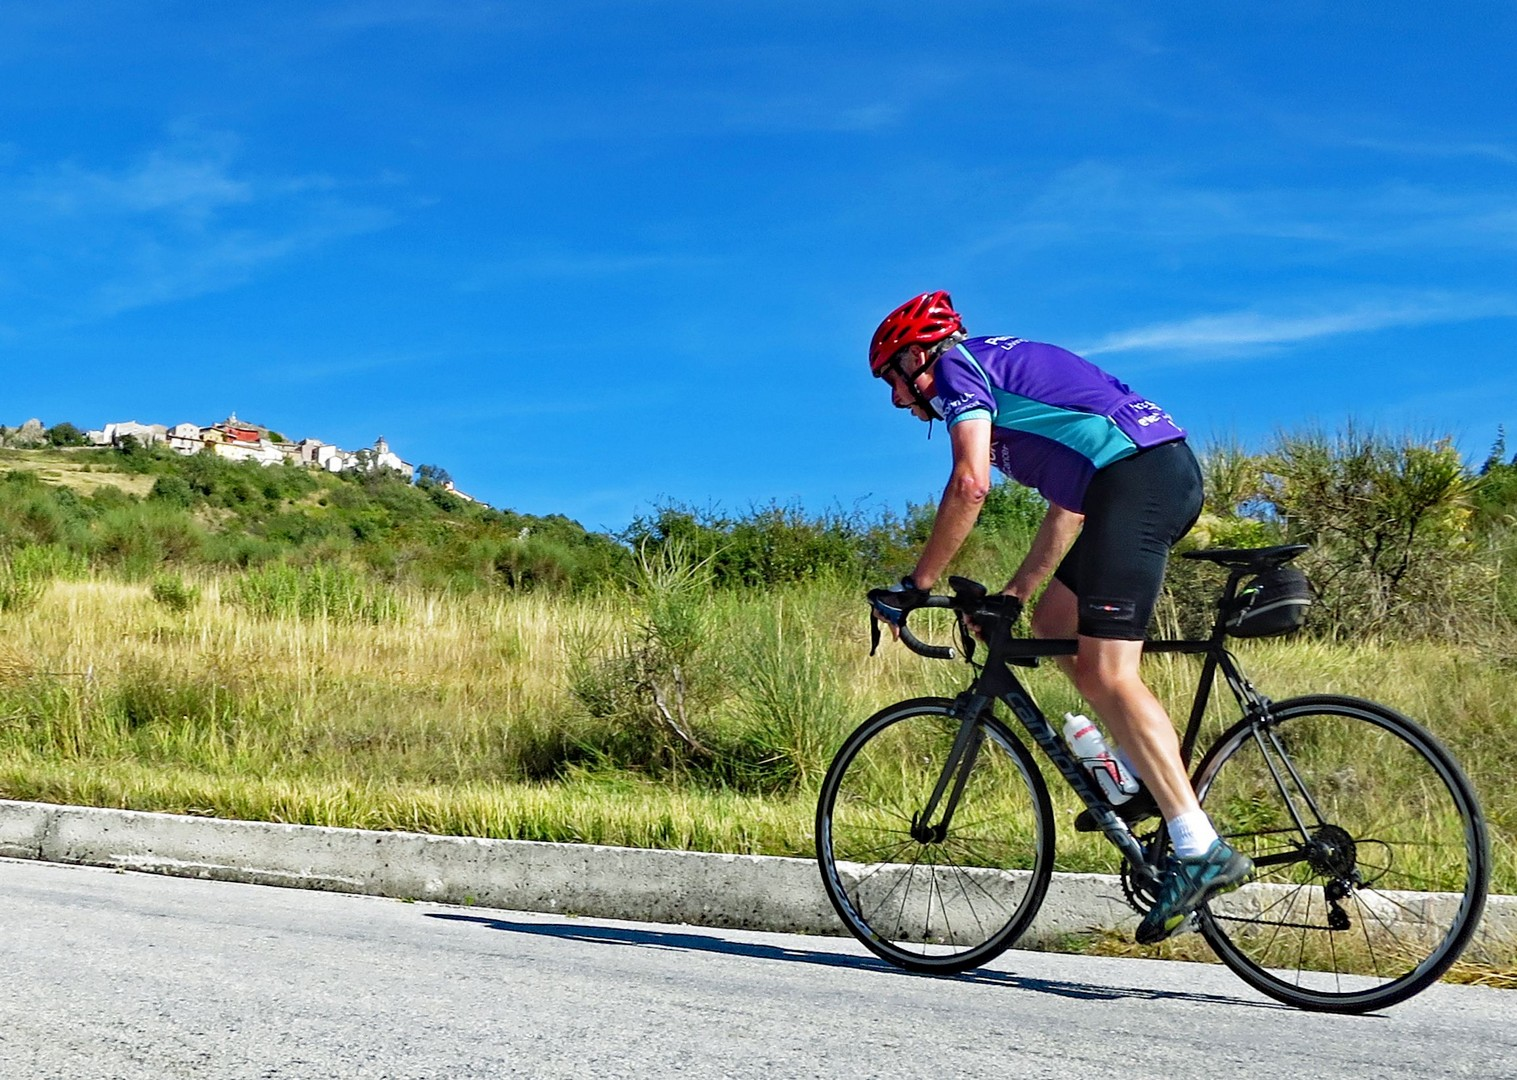 fantastic-scenery-road-cycling-through-italy.jpg - Italy - Grand Traverse - North to South - Guided Road Cycling Holiday (17 days) - Road Cycling